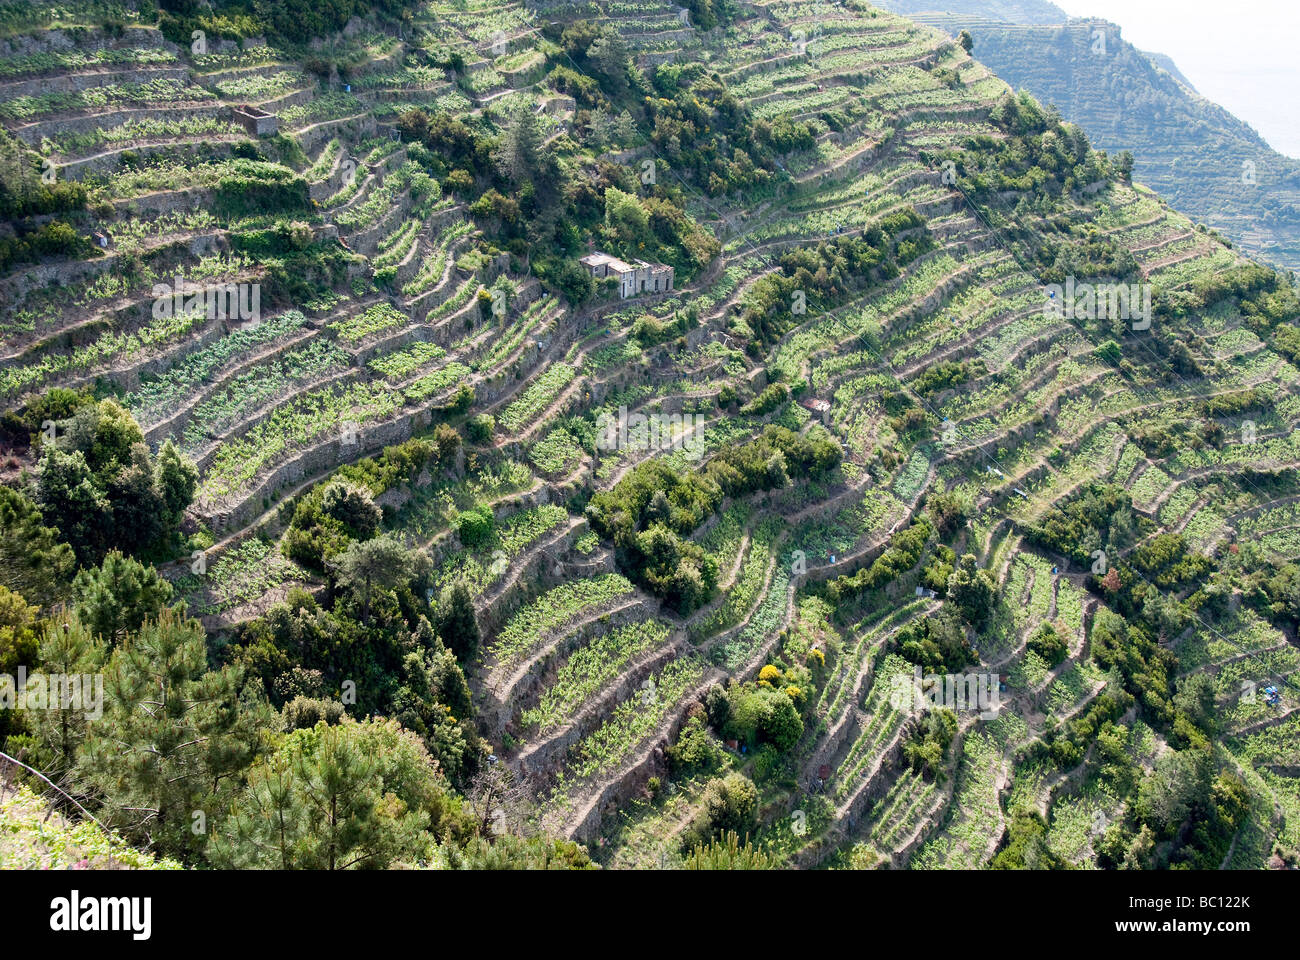 Terrced mountainsides of the Cinque Terre with grape vines - Stock Image